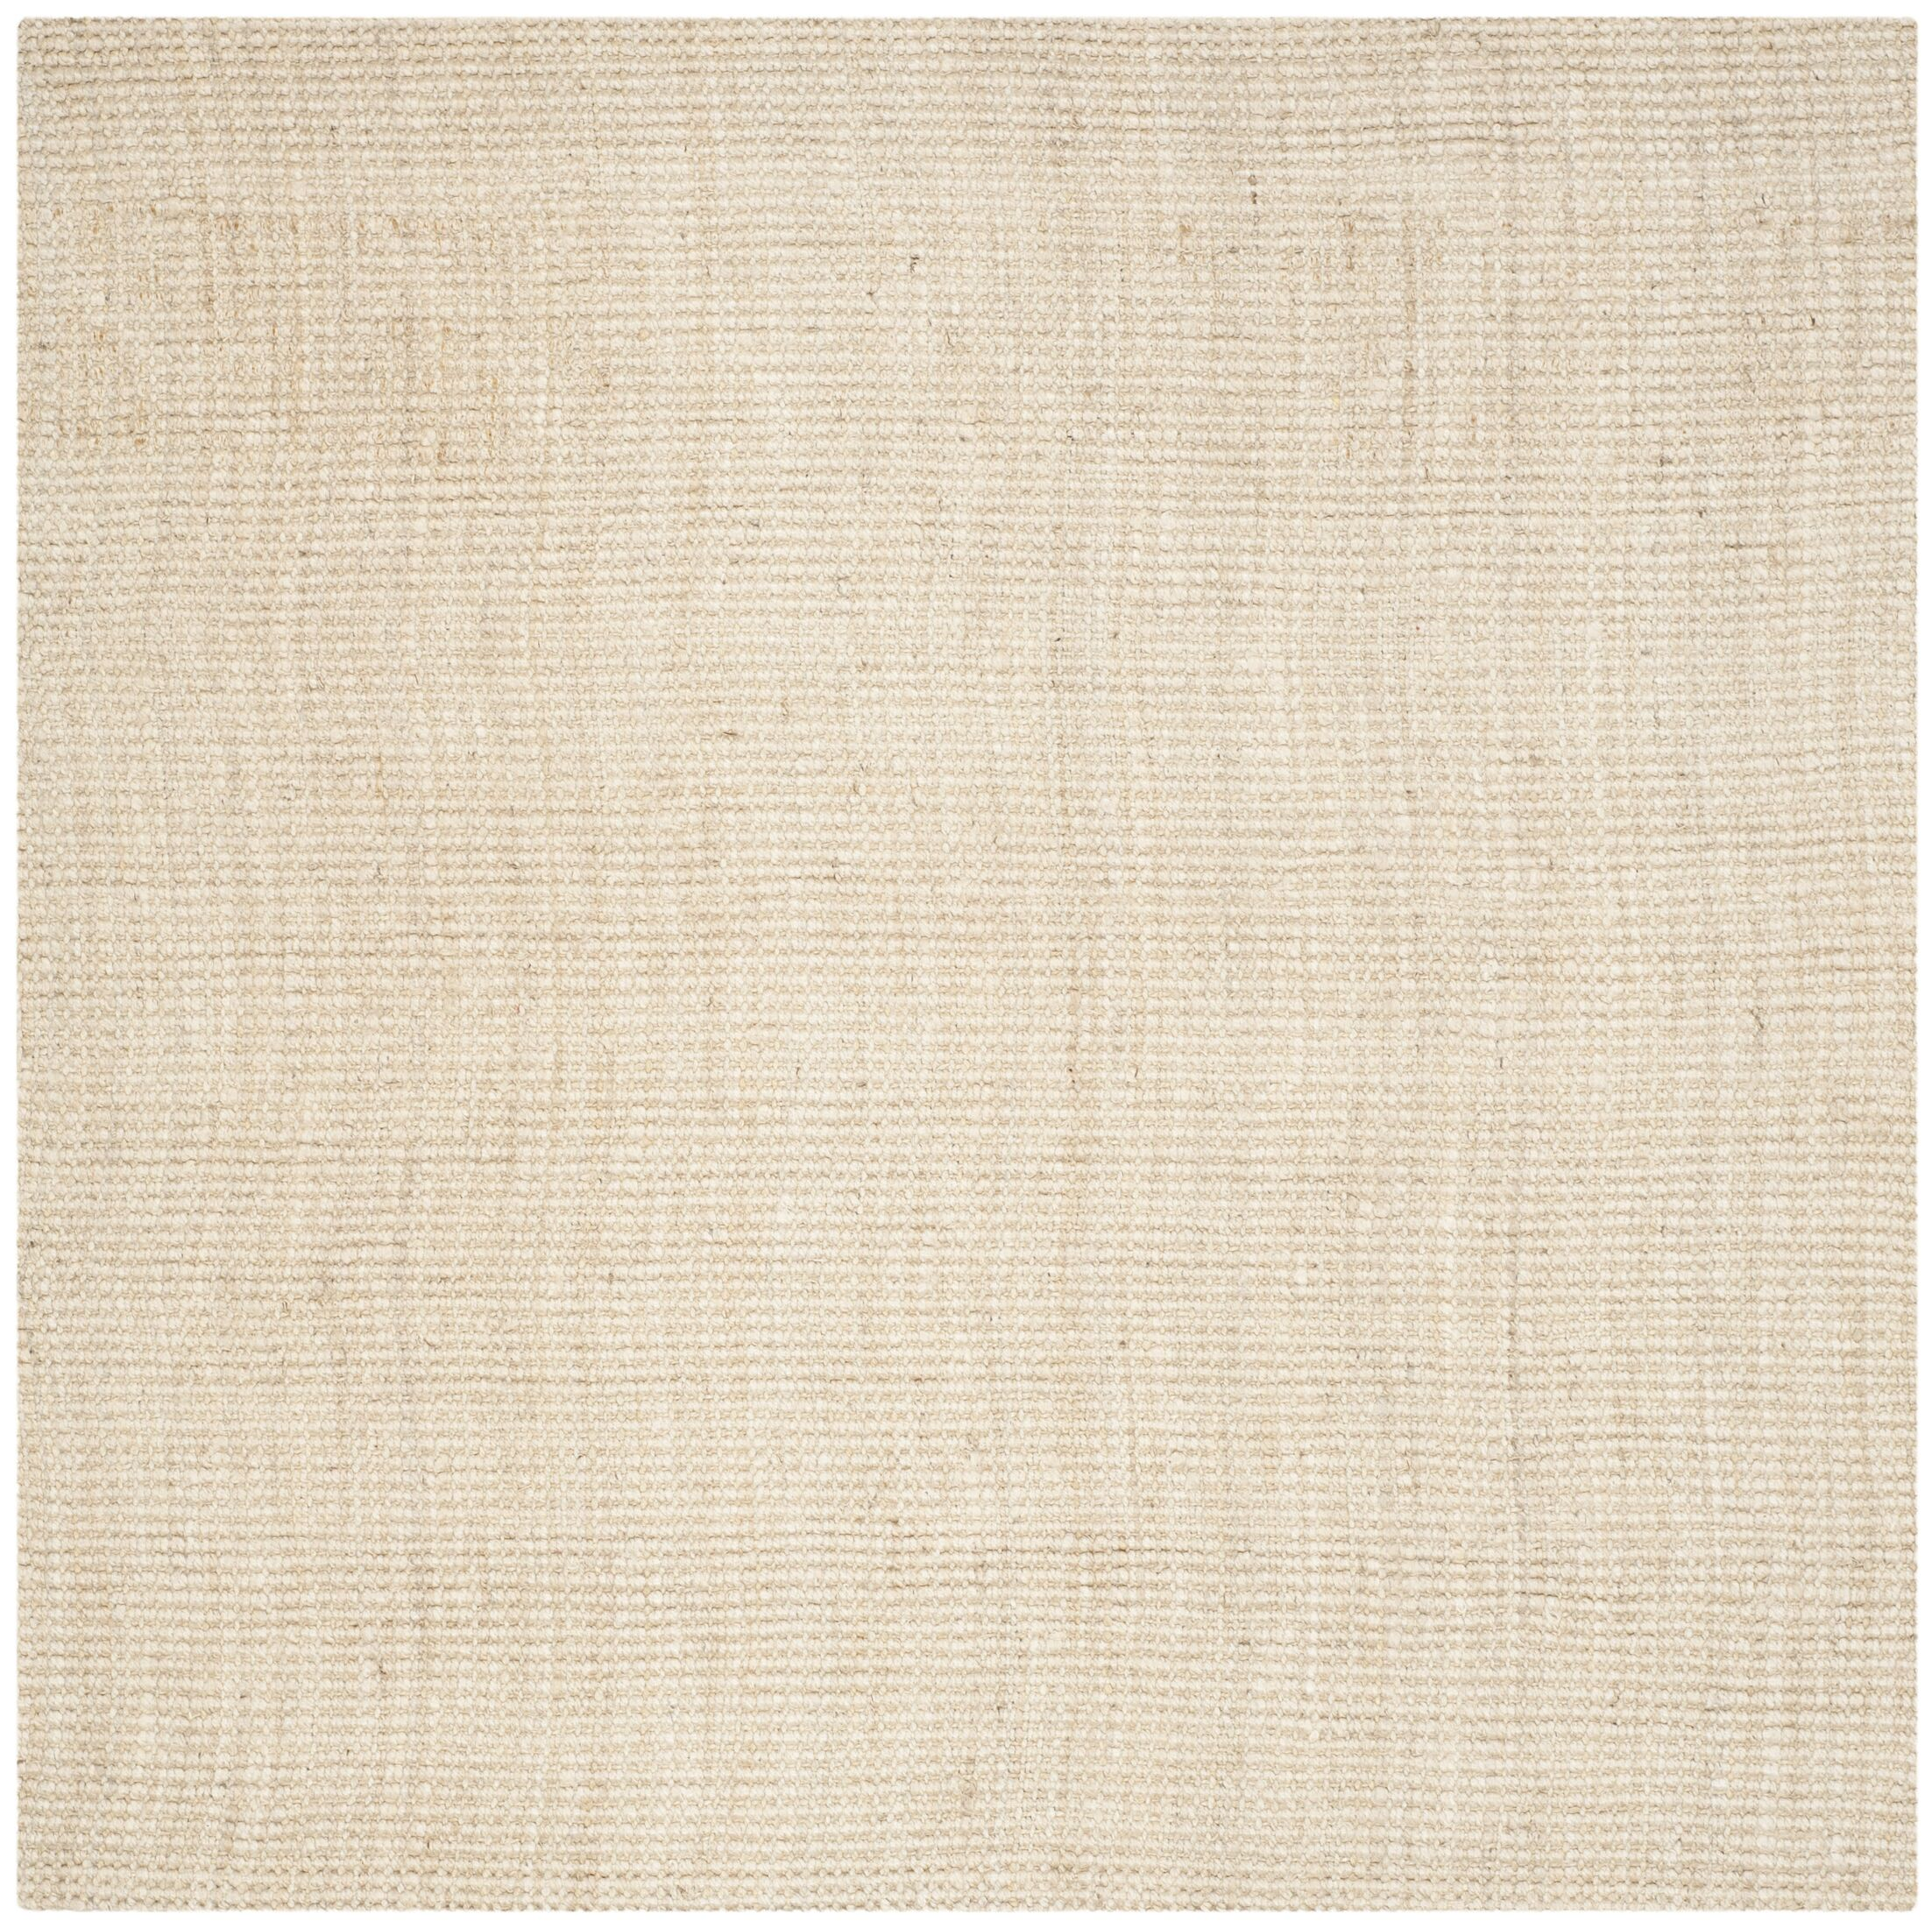 Muriel Hand-Woven Ivory Area Rug Rug Size: Square 9'